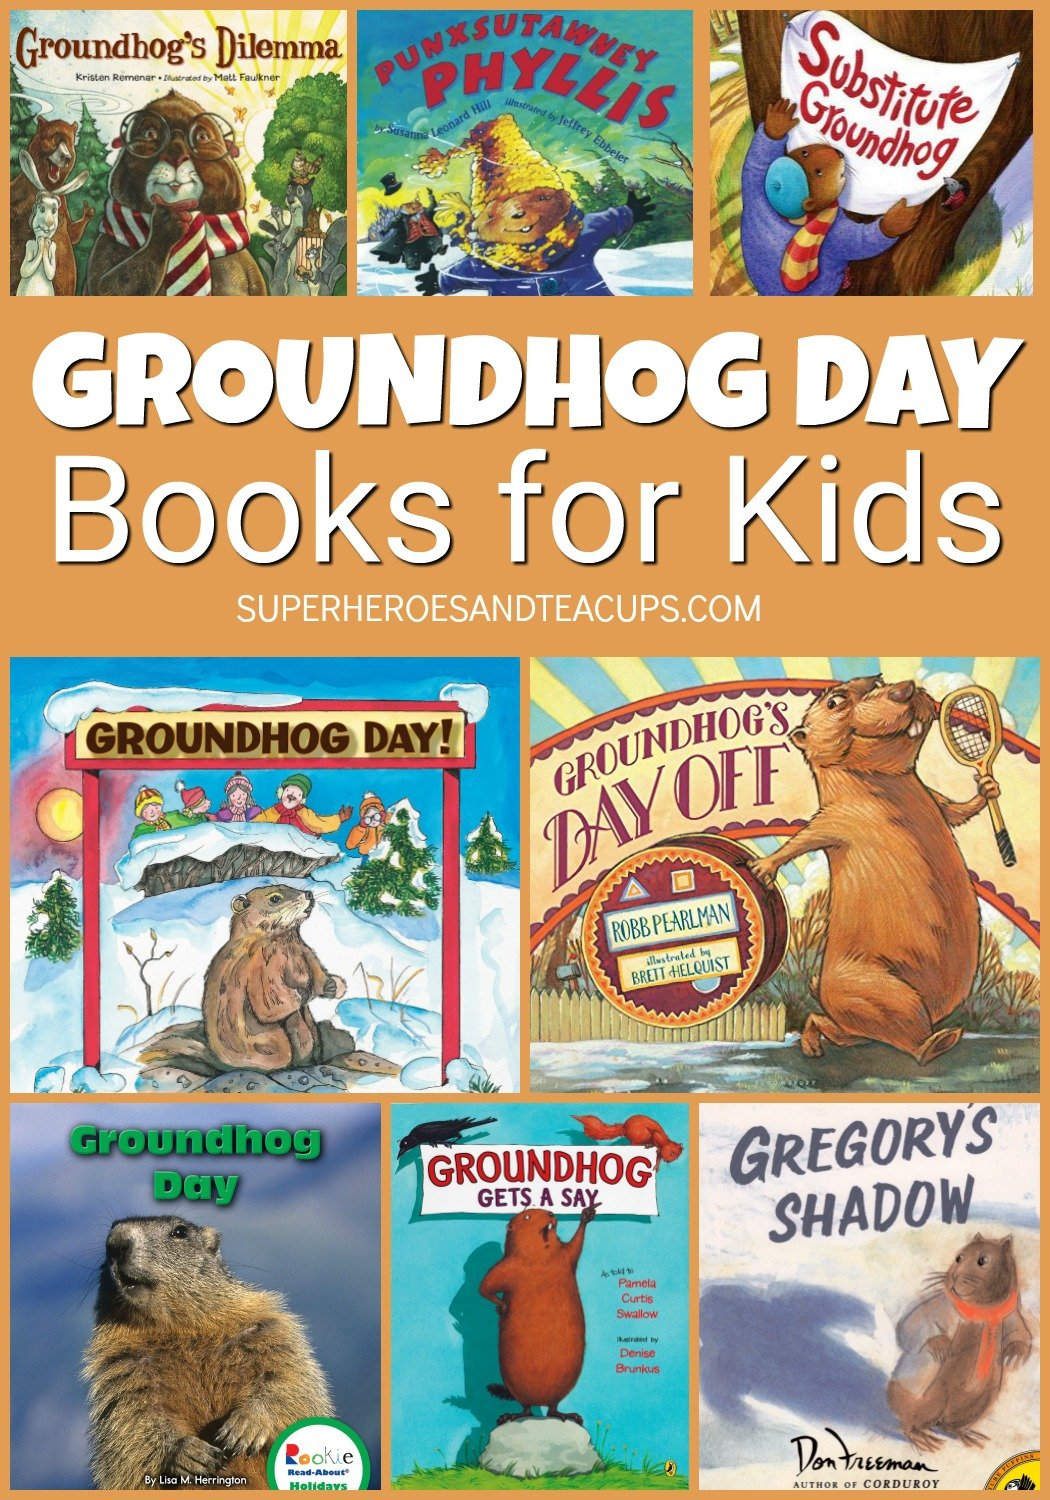 Fun Groundhog Day books for kids. Includes both picture books and non-fiction books. Click through to see the whole list! #groundhogday #groundhogdaybooks #booksforkids #literacy #learningideas #superheroesandteacups